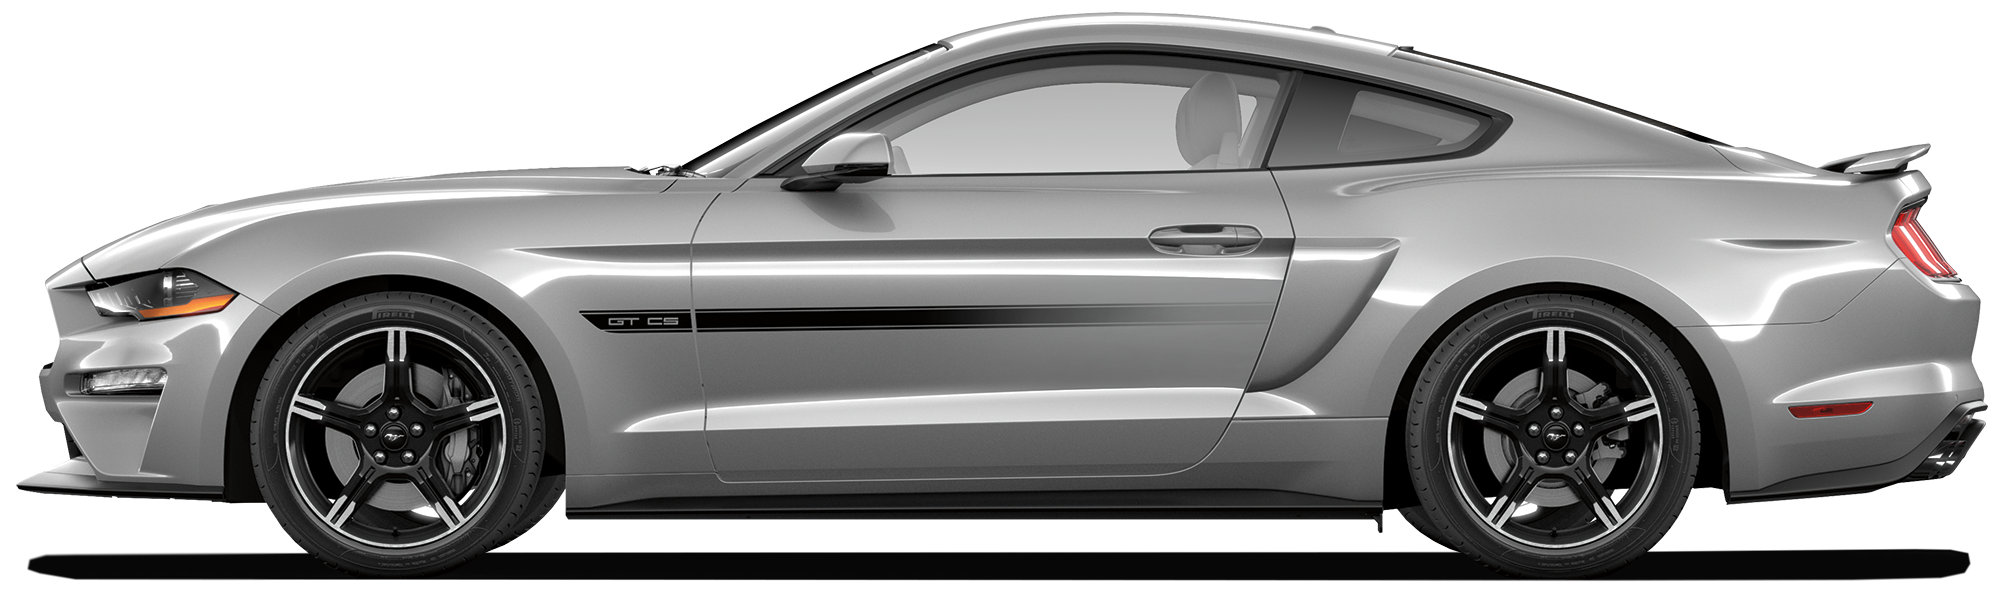 2021 Ford Mustang Coupe GT Premium